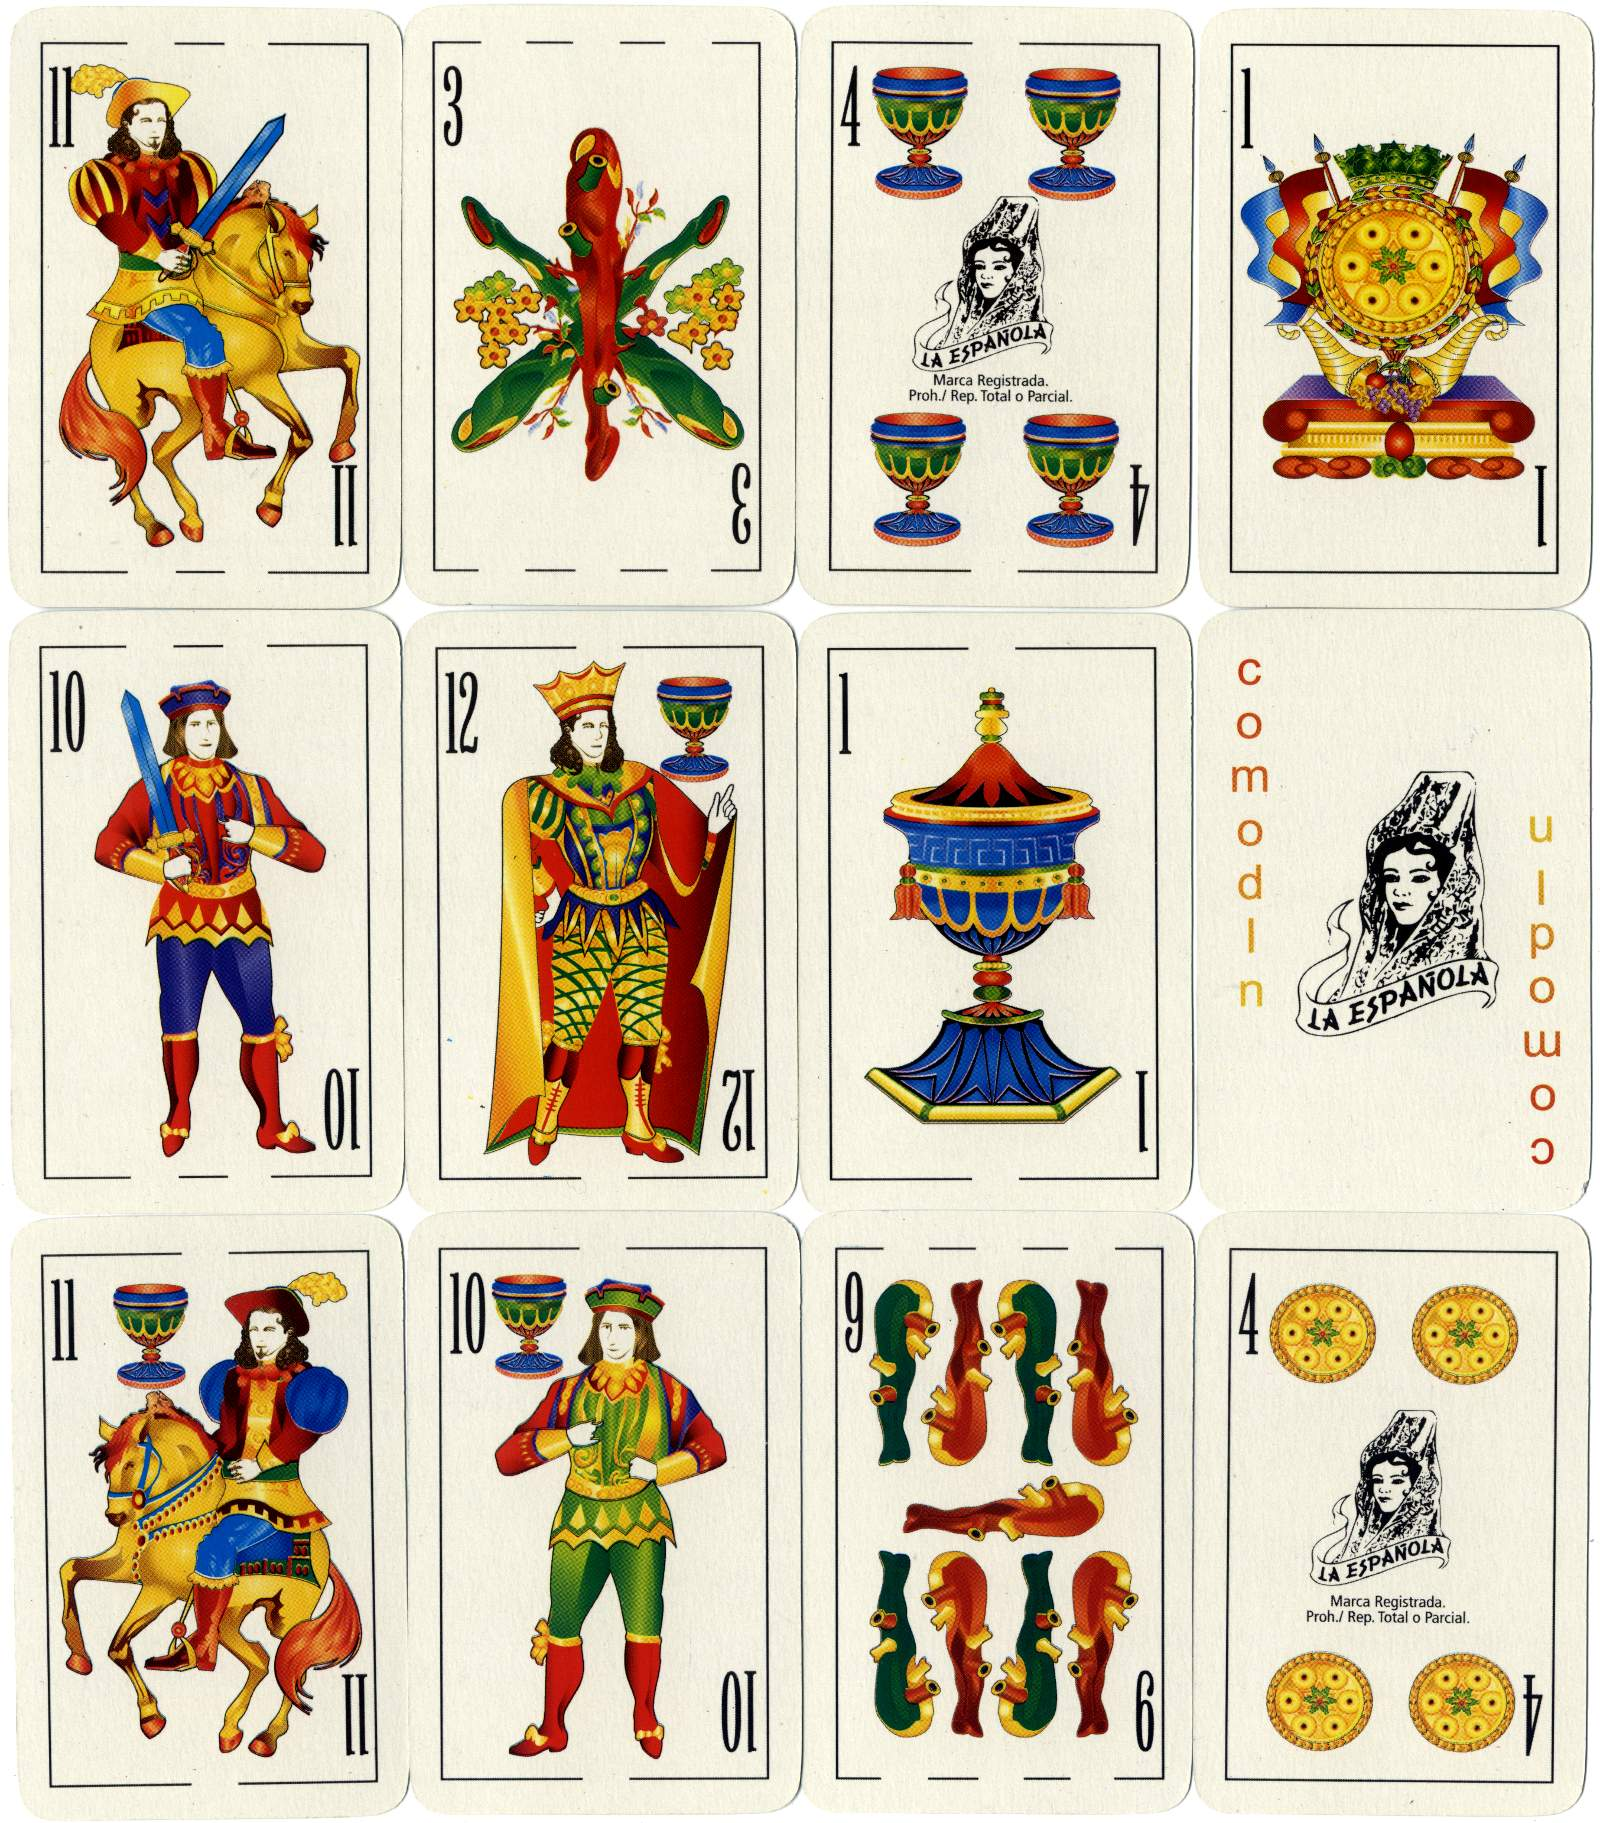 La Española 2000 playing cards, Gráfica 2001's digitally re-drawn version of the original classic 'La Española' Spanish-suited pack